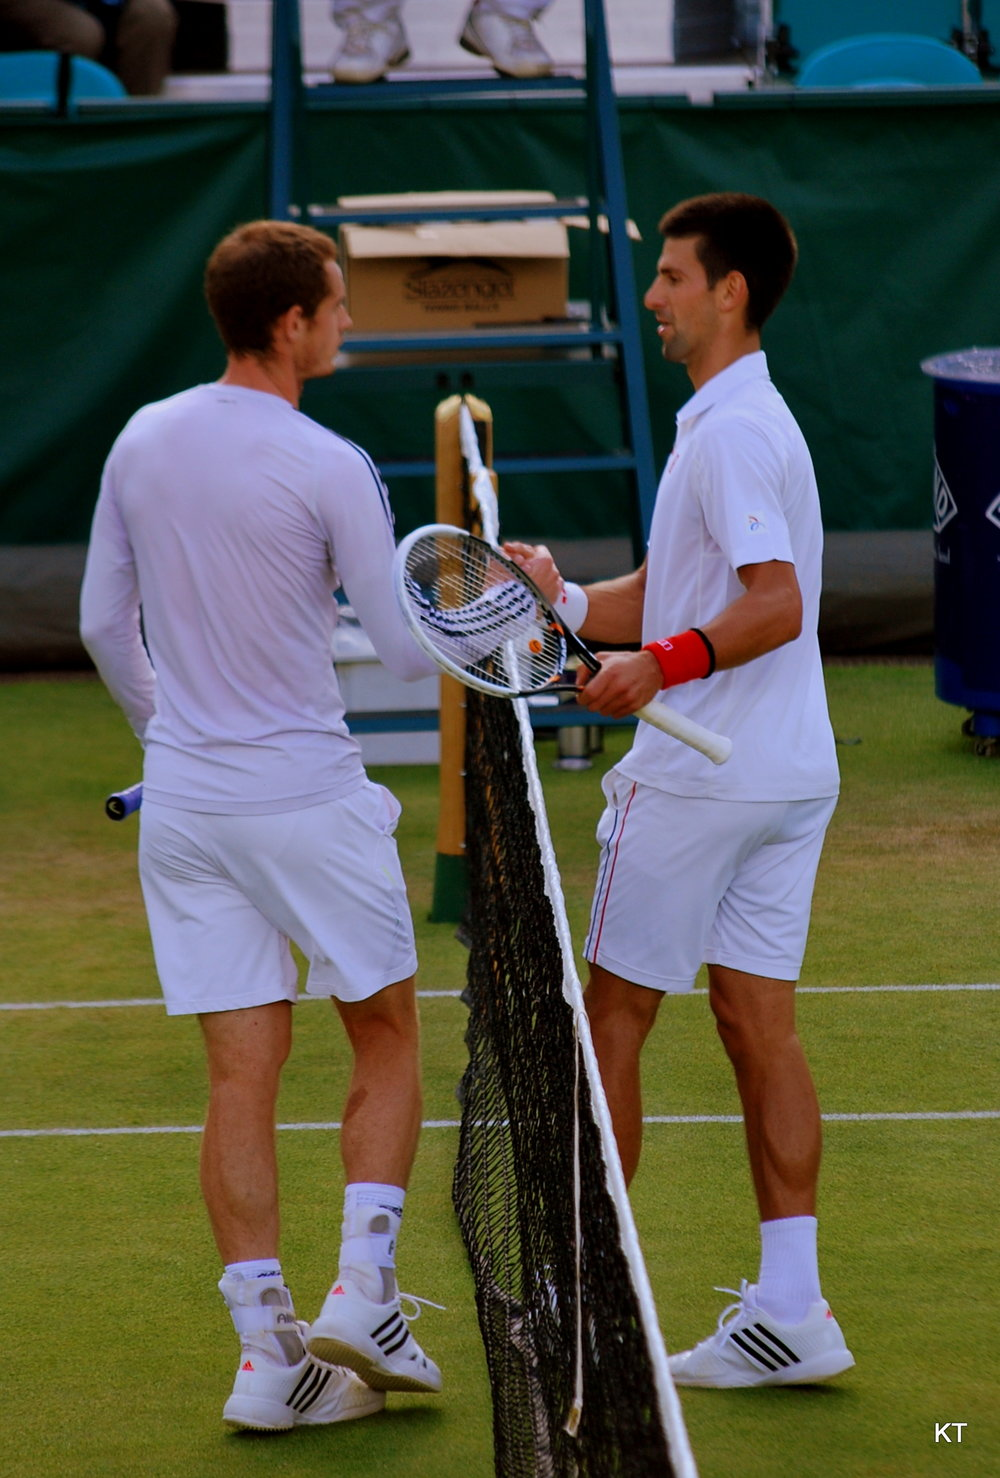 Andy Murray and Novak Djokovic at The Boodles Tennis Challenge exhibition in Stoke Park, Buckinghamshire, England in 2012.